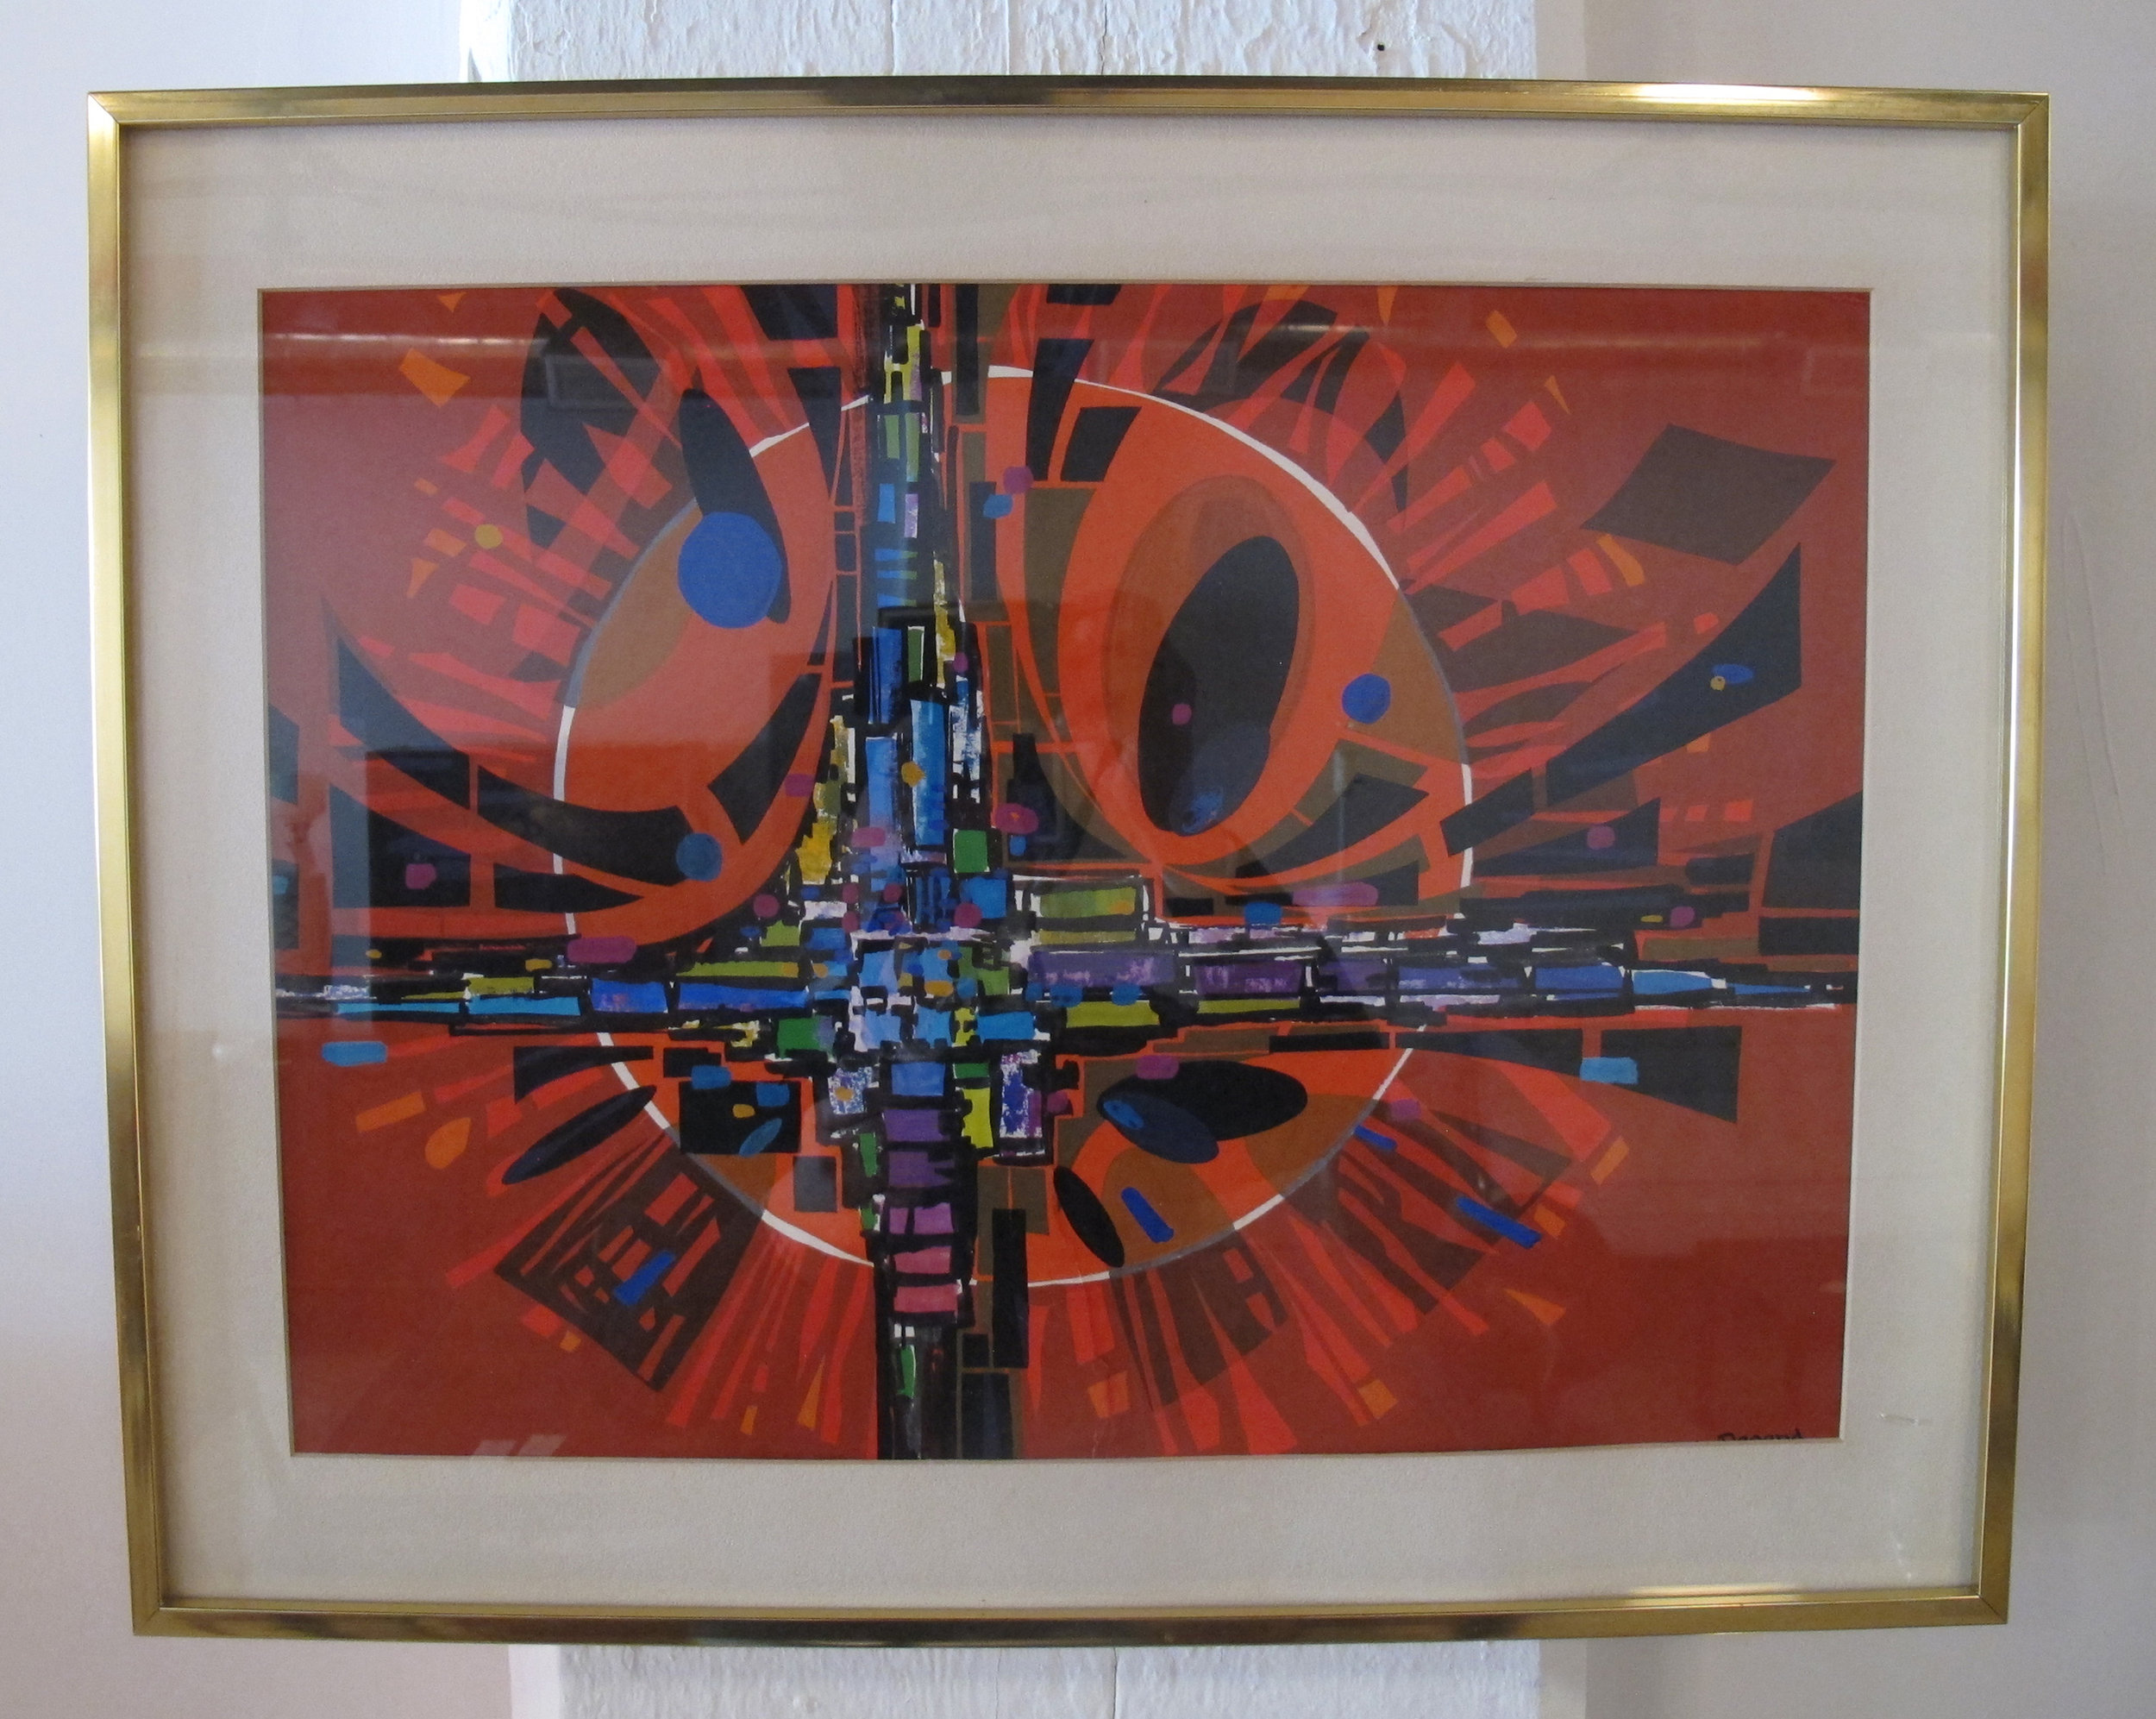 FRAMED ABSTRACT ACRYLIC ON PAPER BY MICHAEL DEGAND